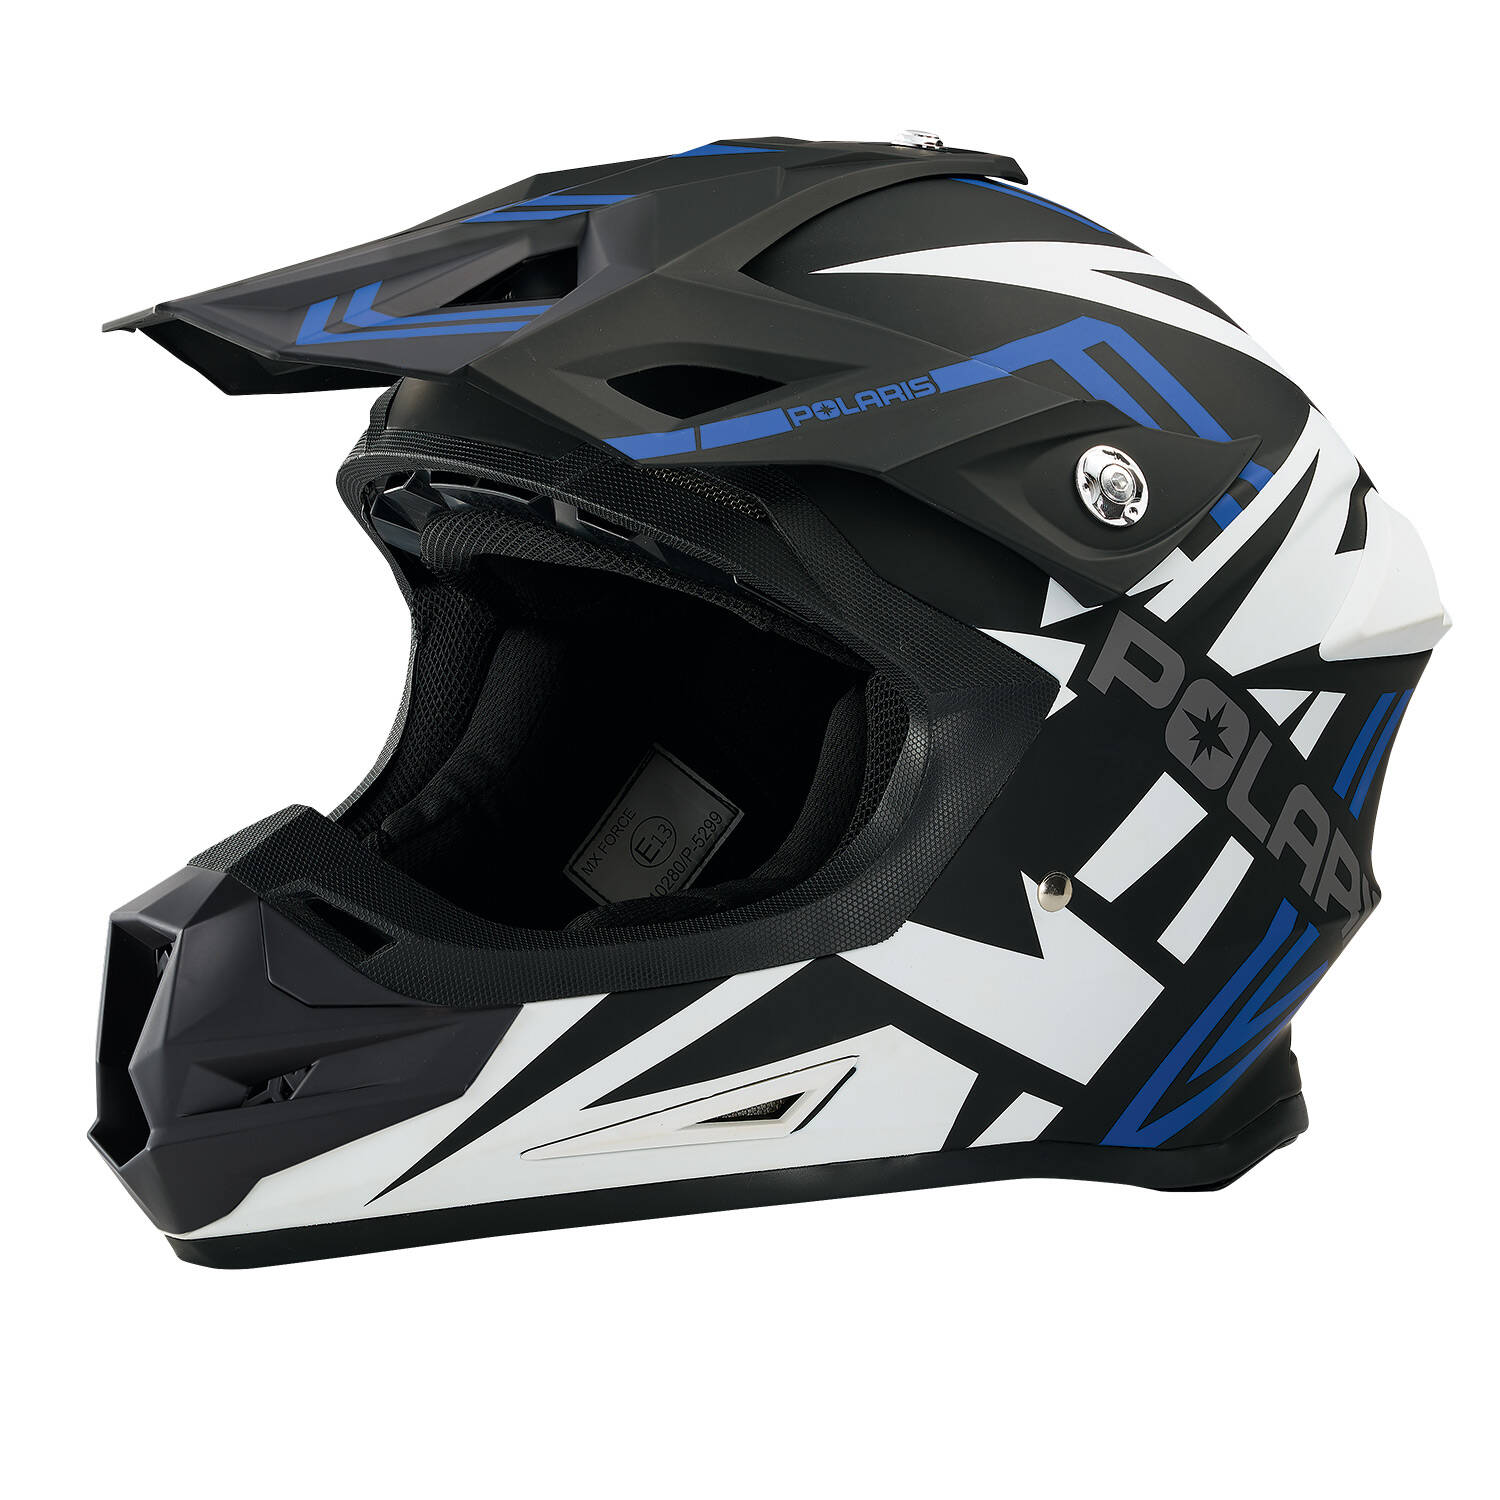 Force Adult Moto Helmet with Removable Mouthpiece, Blue